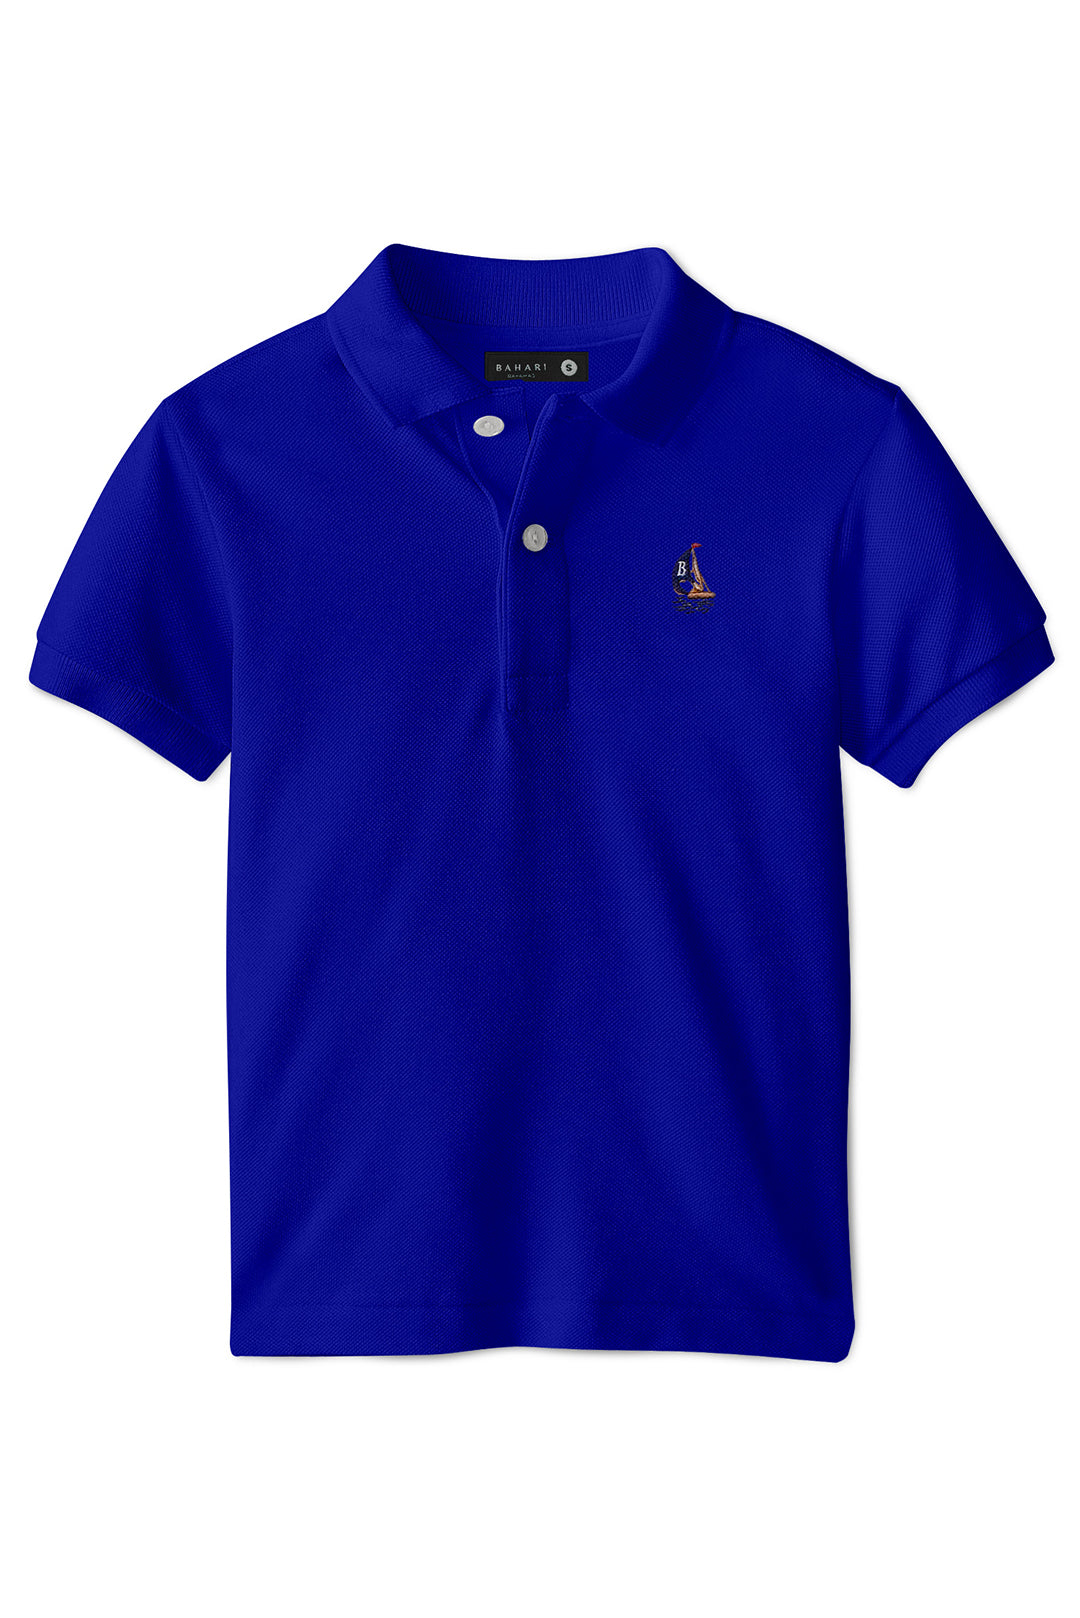 THE CLASSIC POLO- ROYAL BLUE